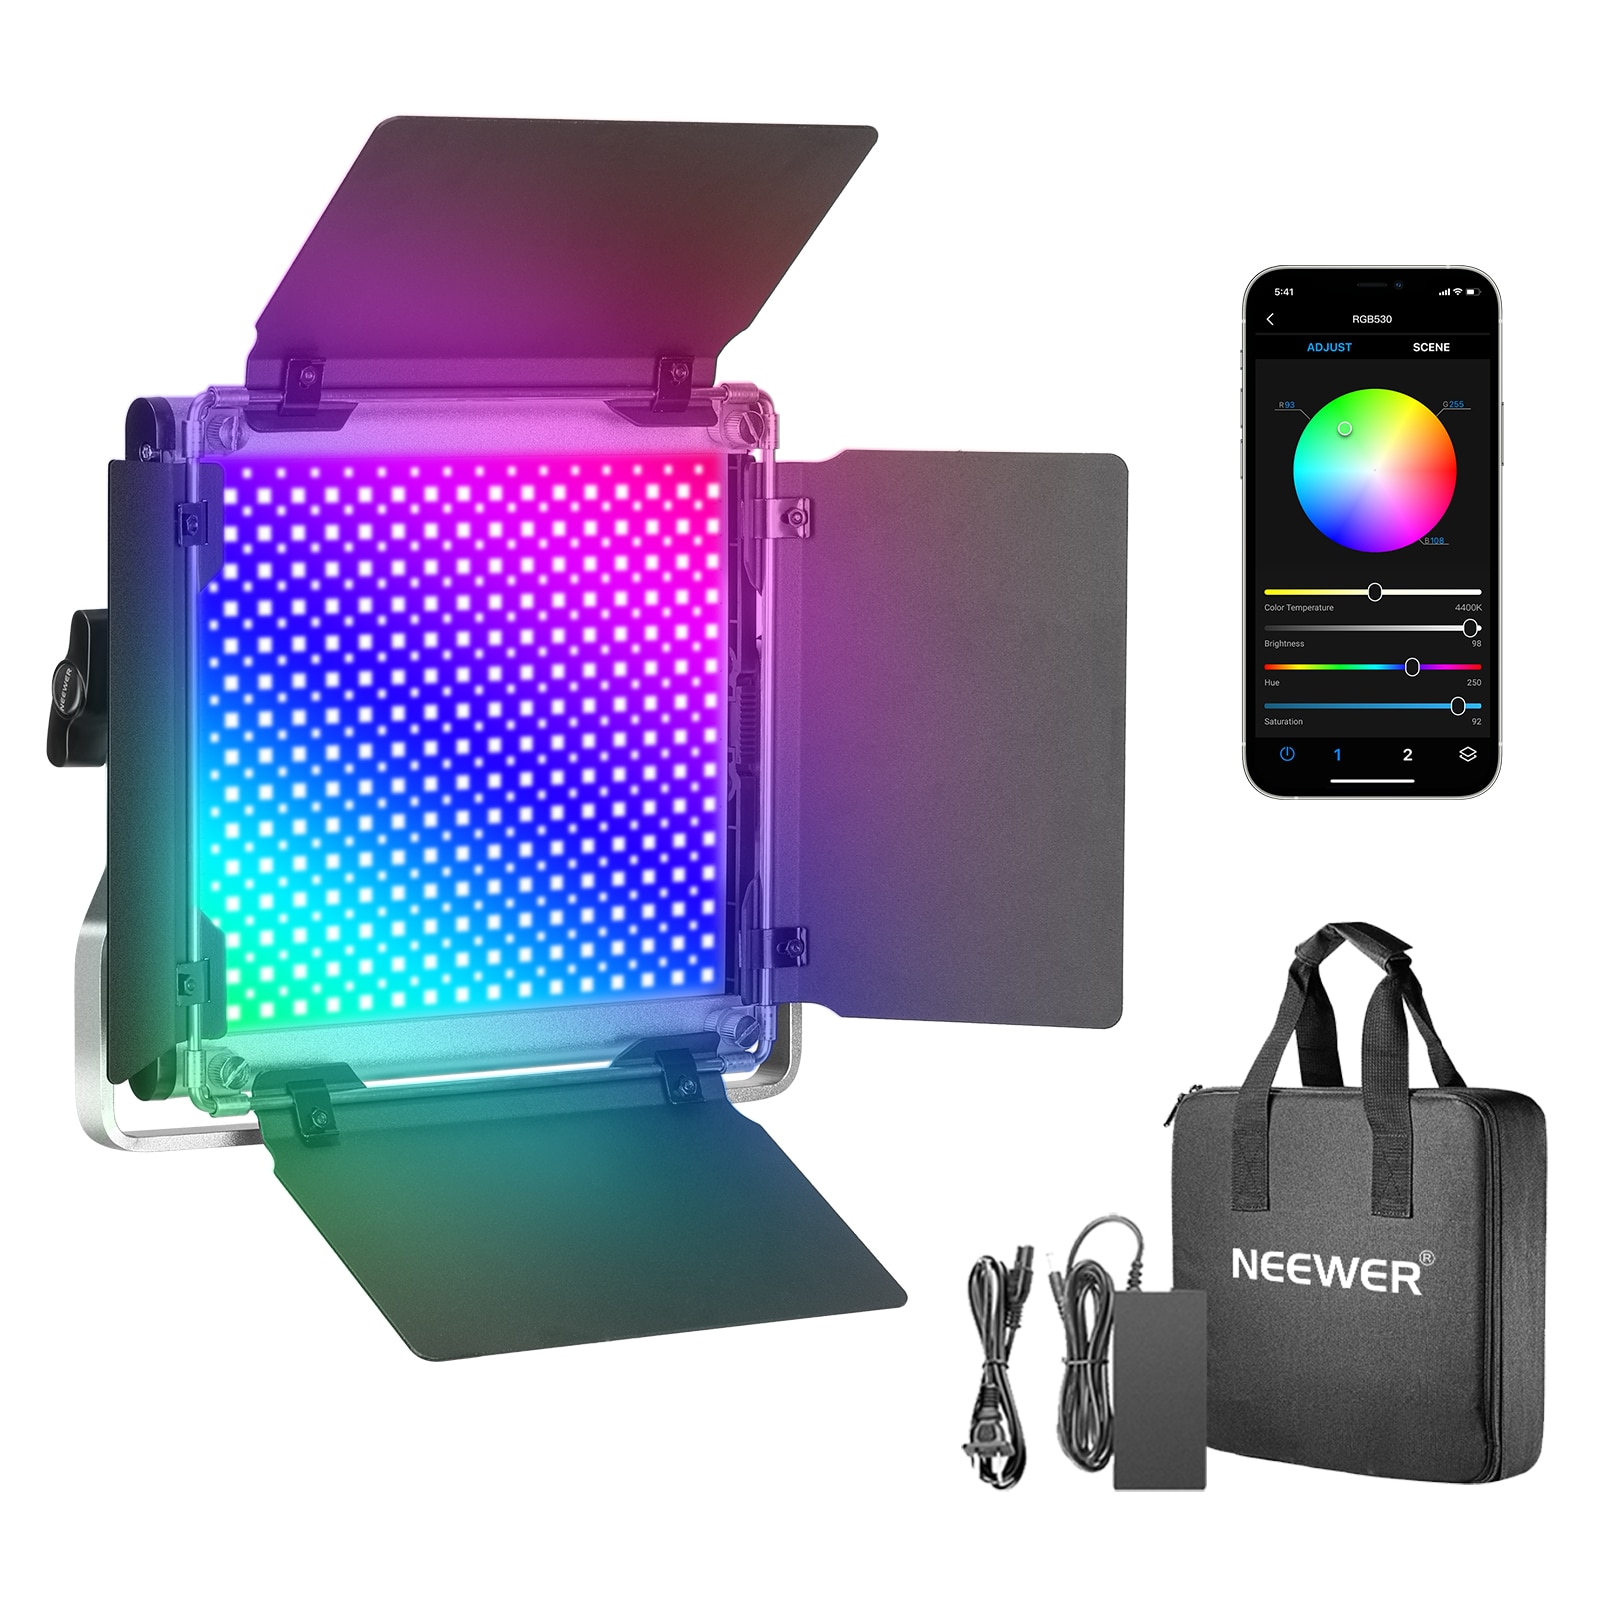 Neewer 530 RGB Led Light with APP Control, 528 SMD LEDs CRI95/3200K-5600K/Brightness 0-100%/0-360 Adjustable Colors/9 Applicable